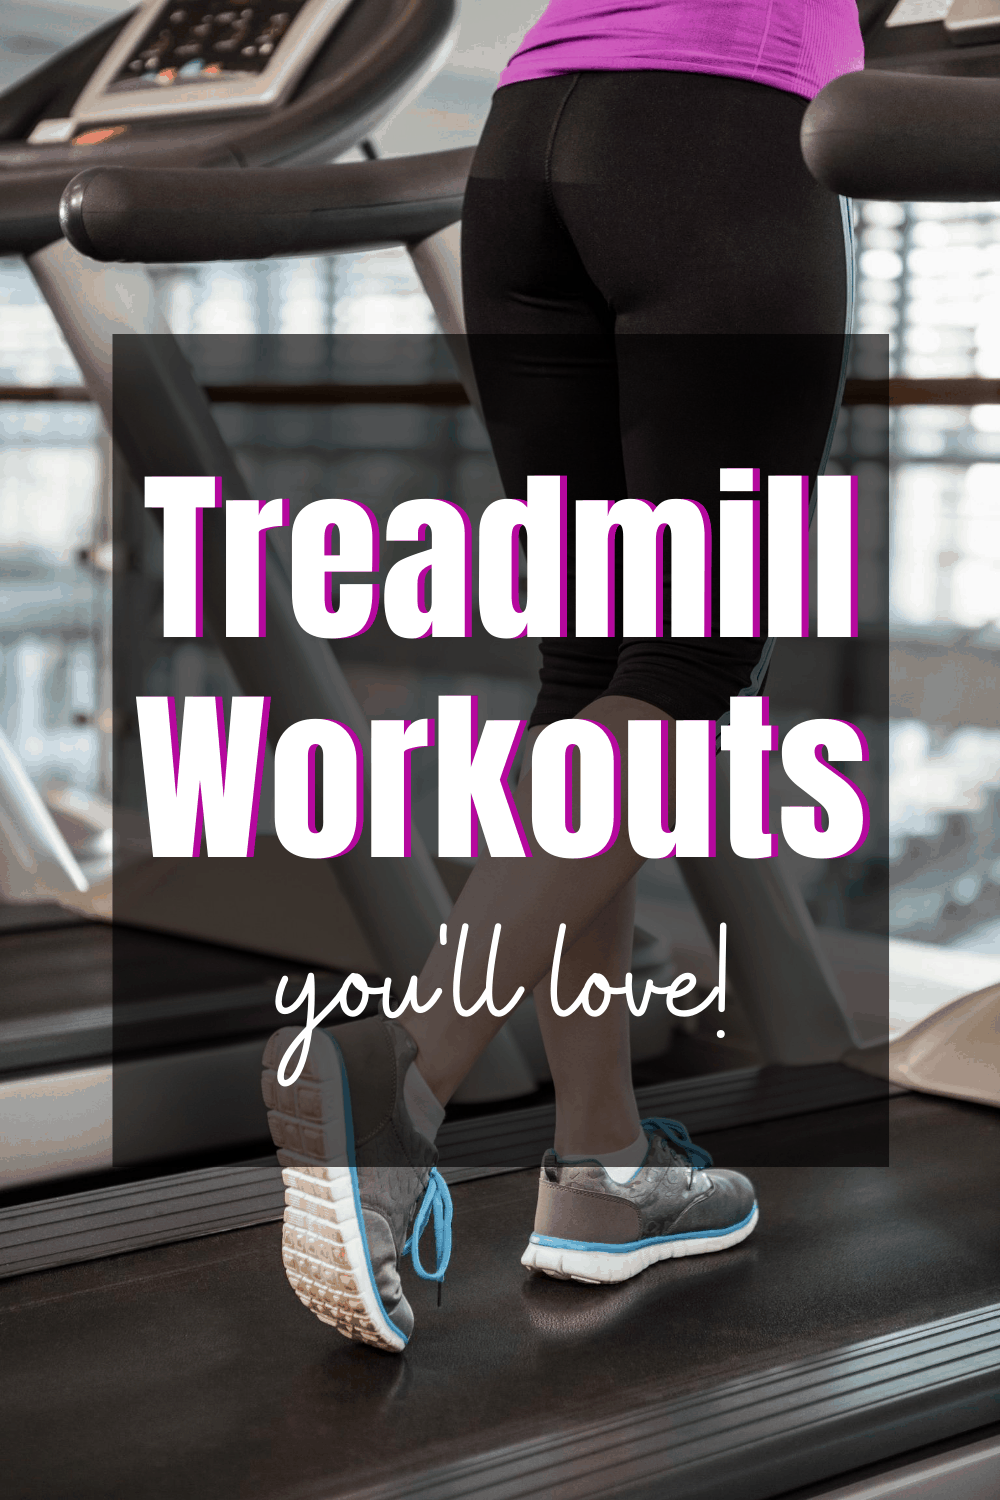 Treadmill workouts are a popular choice for improving cardiovascular fitness as well as losing weight. There are so many beneficial ways to use a treadmill for getting into shape and staying fit for all levels of fitness. The right workout plan can make exercise more fun and exciting and less boring and stale. You can vary the run speed with an easy pace, gradually increasing your walk speed to create a hill workout that will slowly increase your heart rate or go right into an interval training if you are short on time. via @fitfoundme